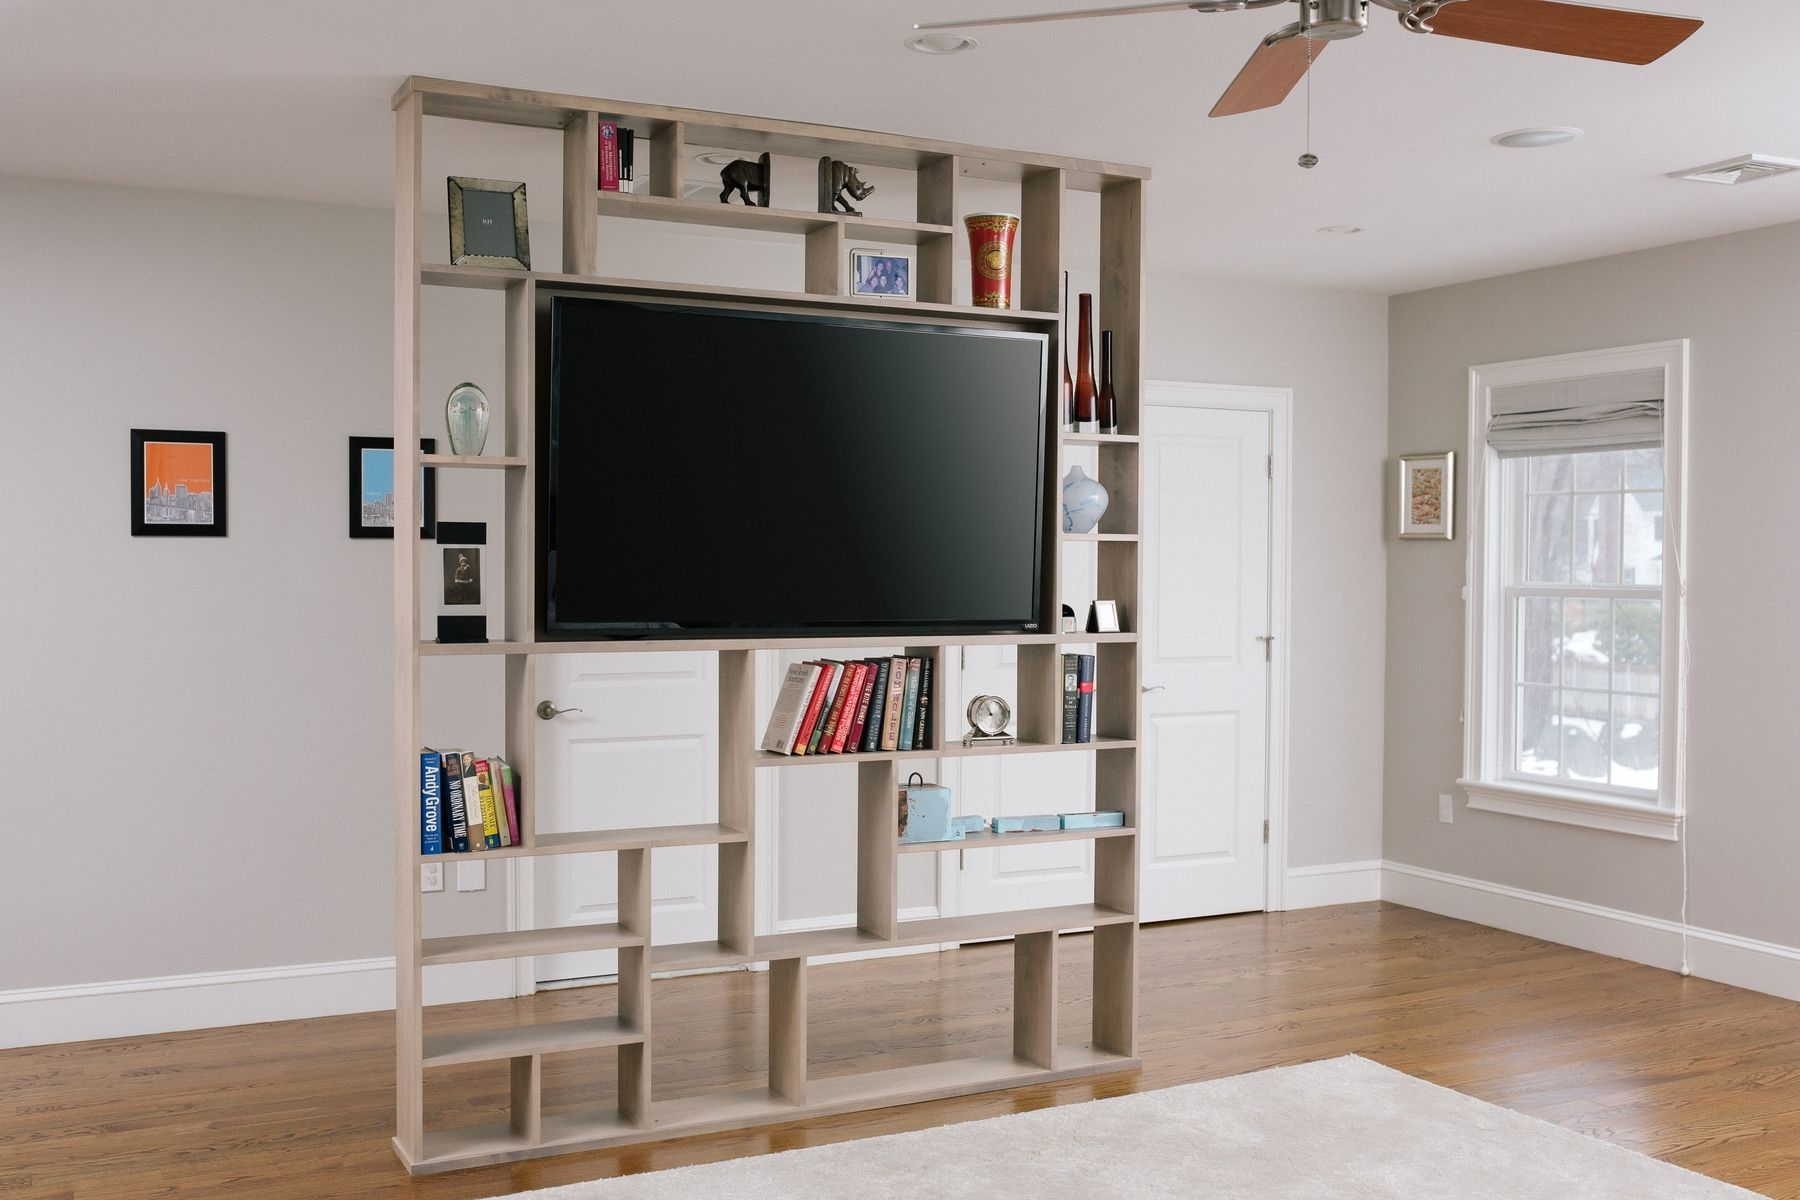 Custom Made Lexington Room Divider / Bookshelf / Tv Stand For Middle Of The  Room TV